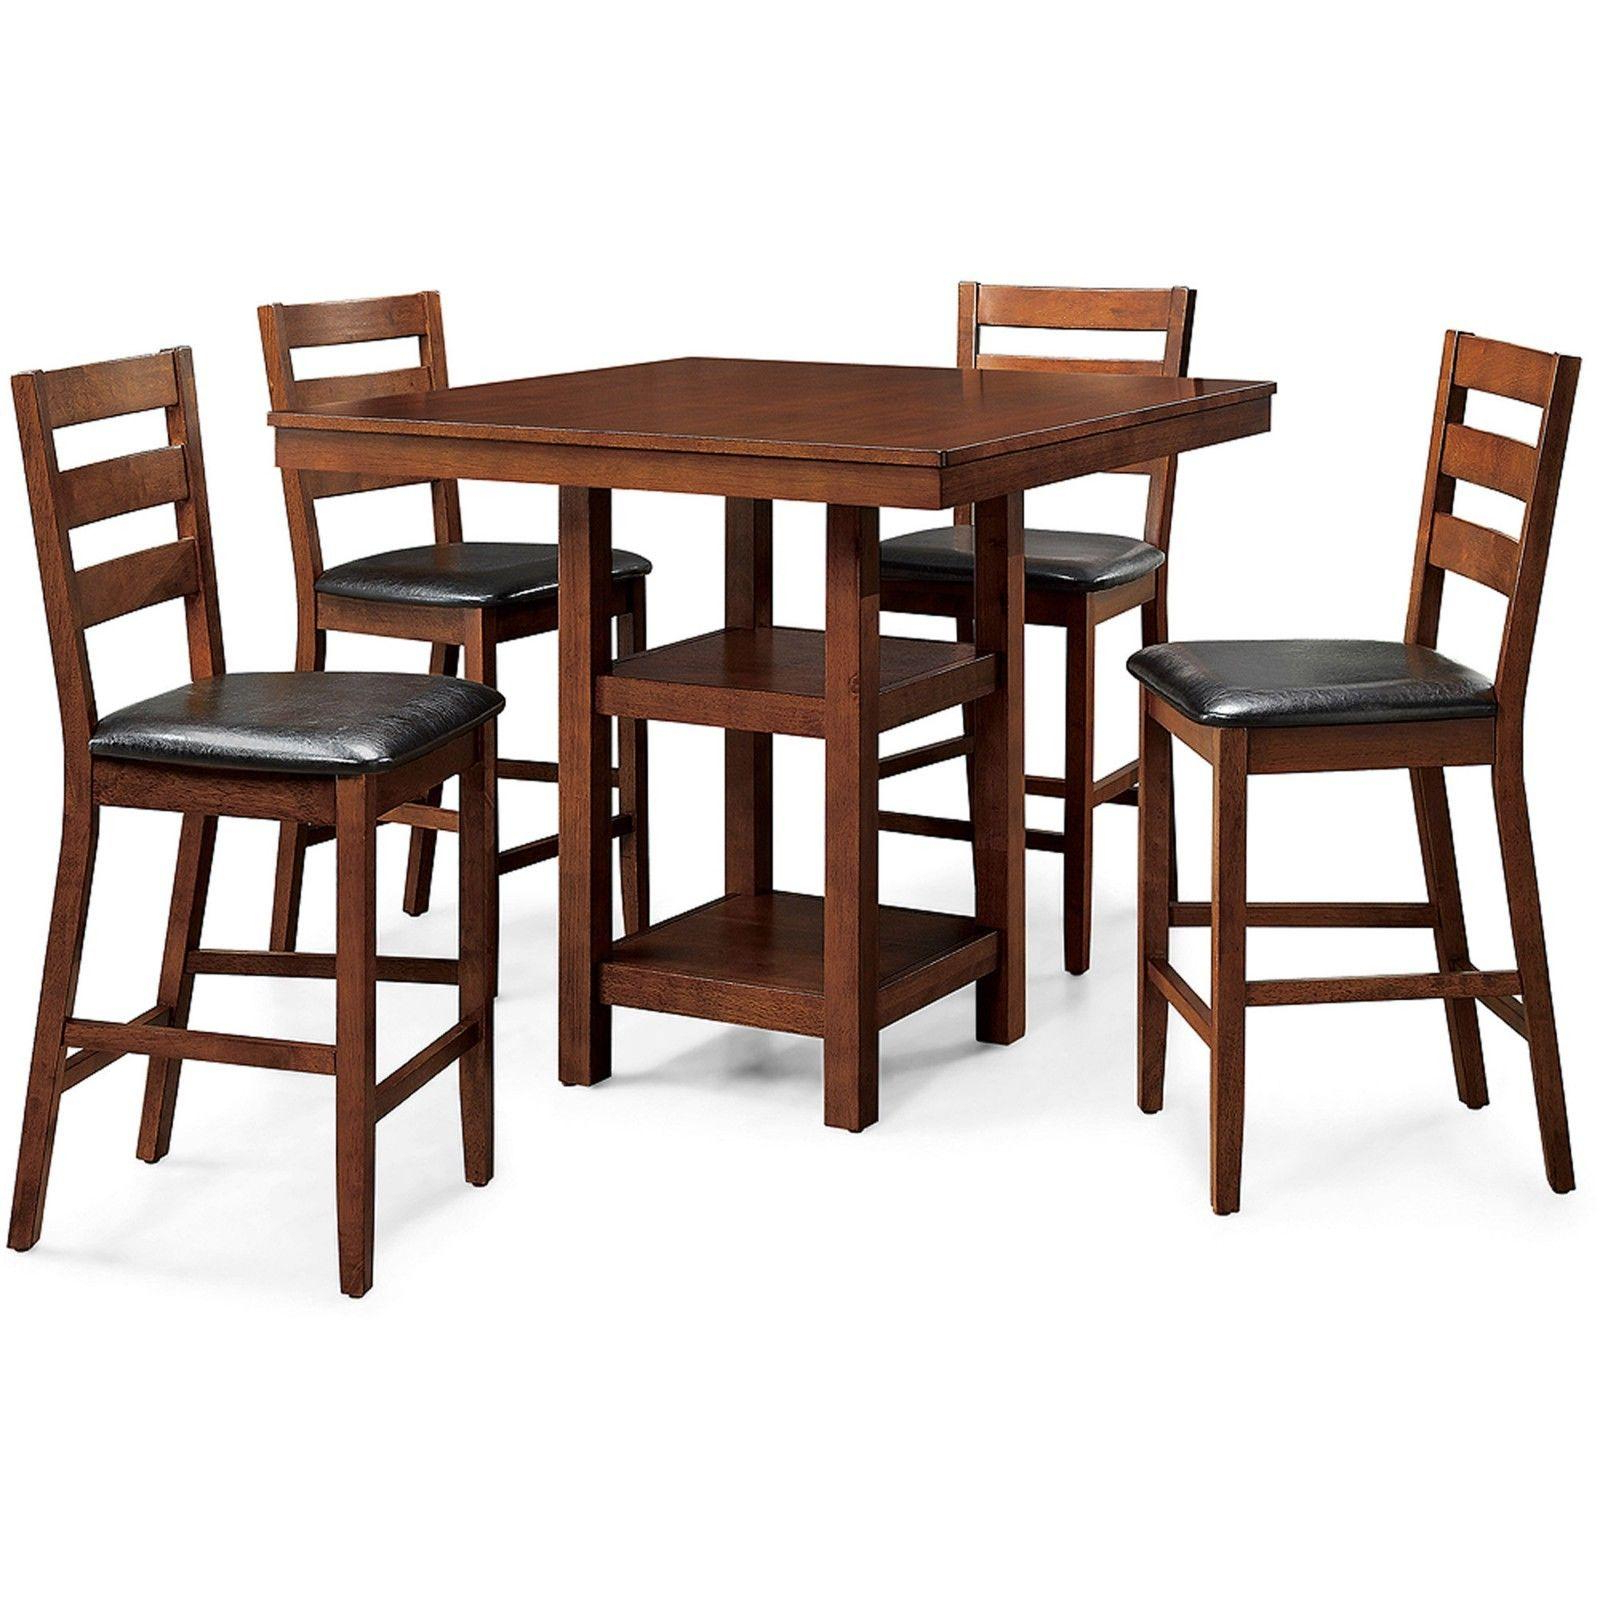 Dining Table Intended For Well Known Noyes 5 Piece Dining Sets (Gallery 13 of 25)